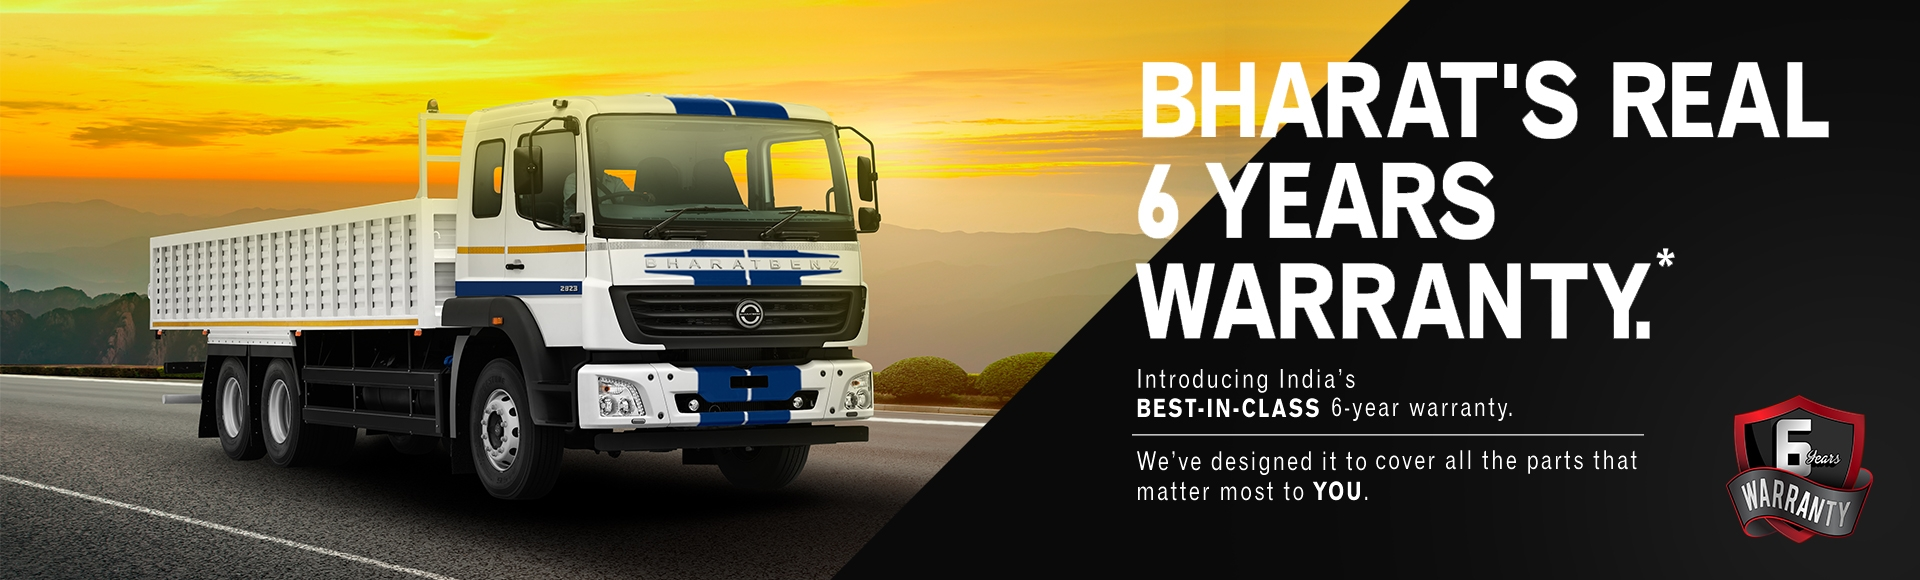 Bharat's Real 6 Years Warranty